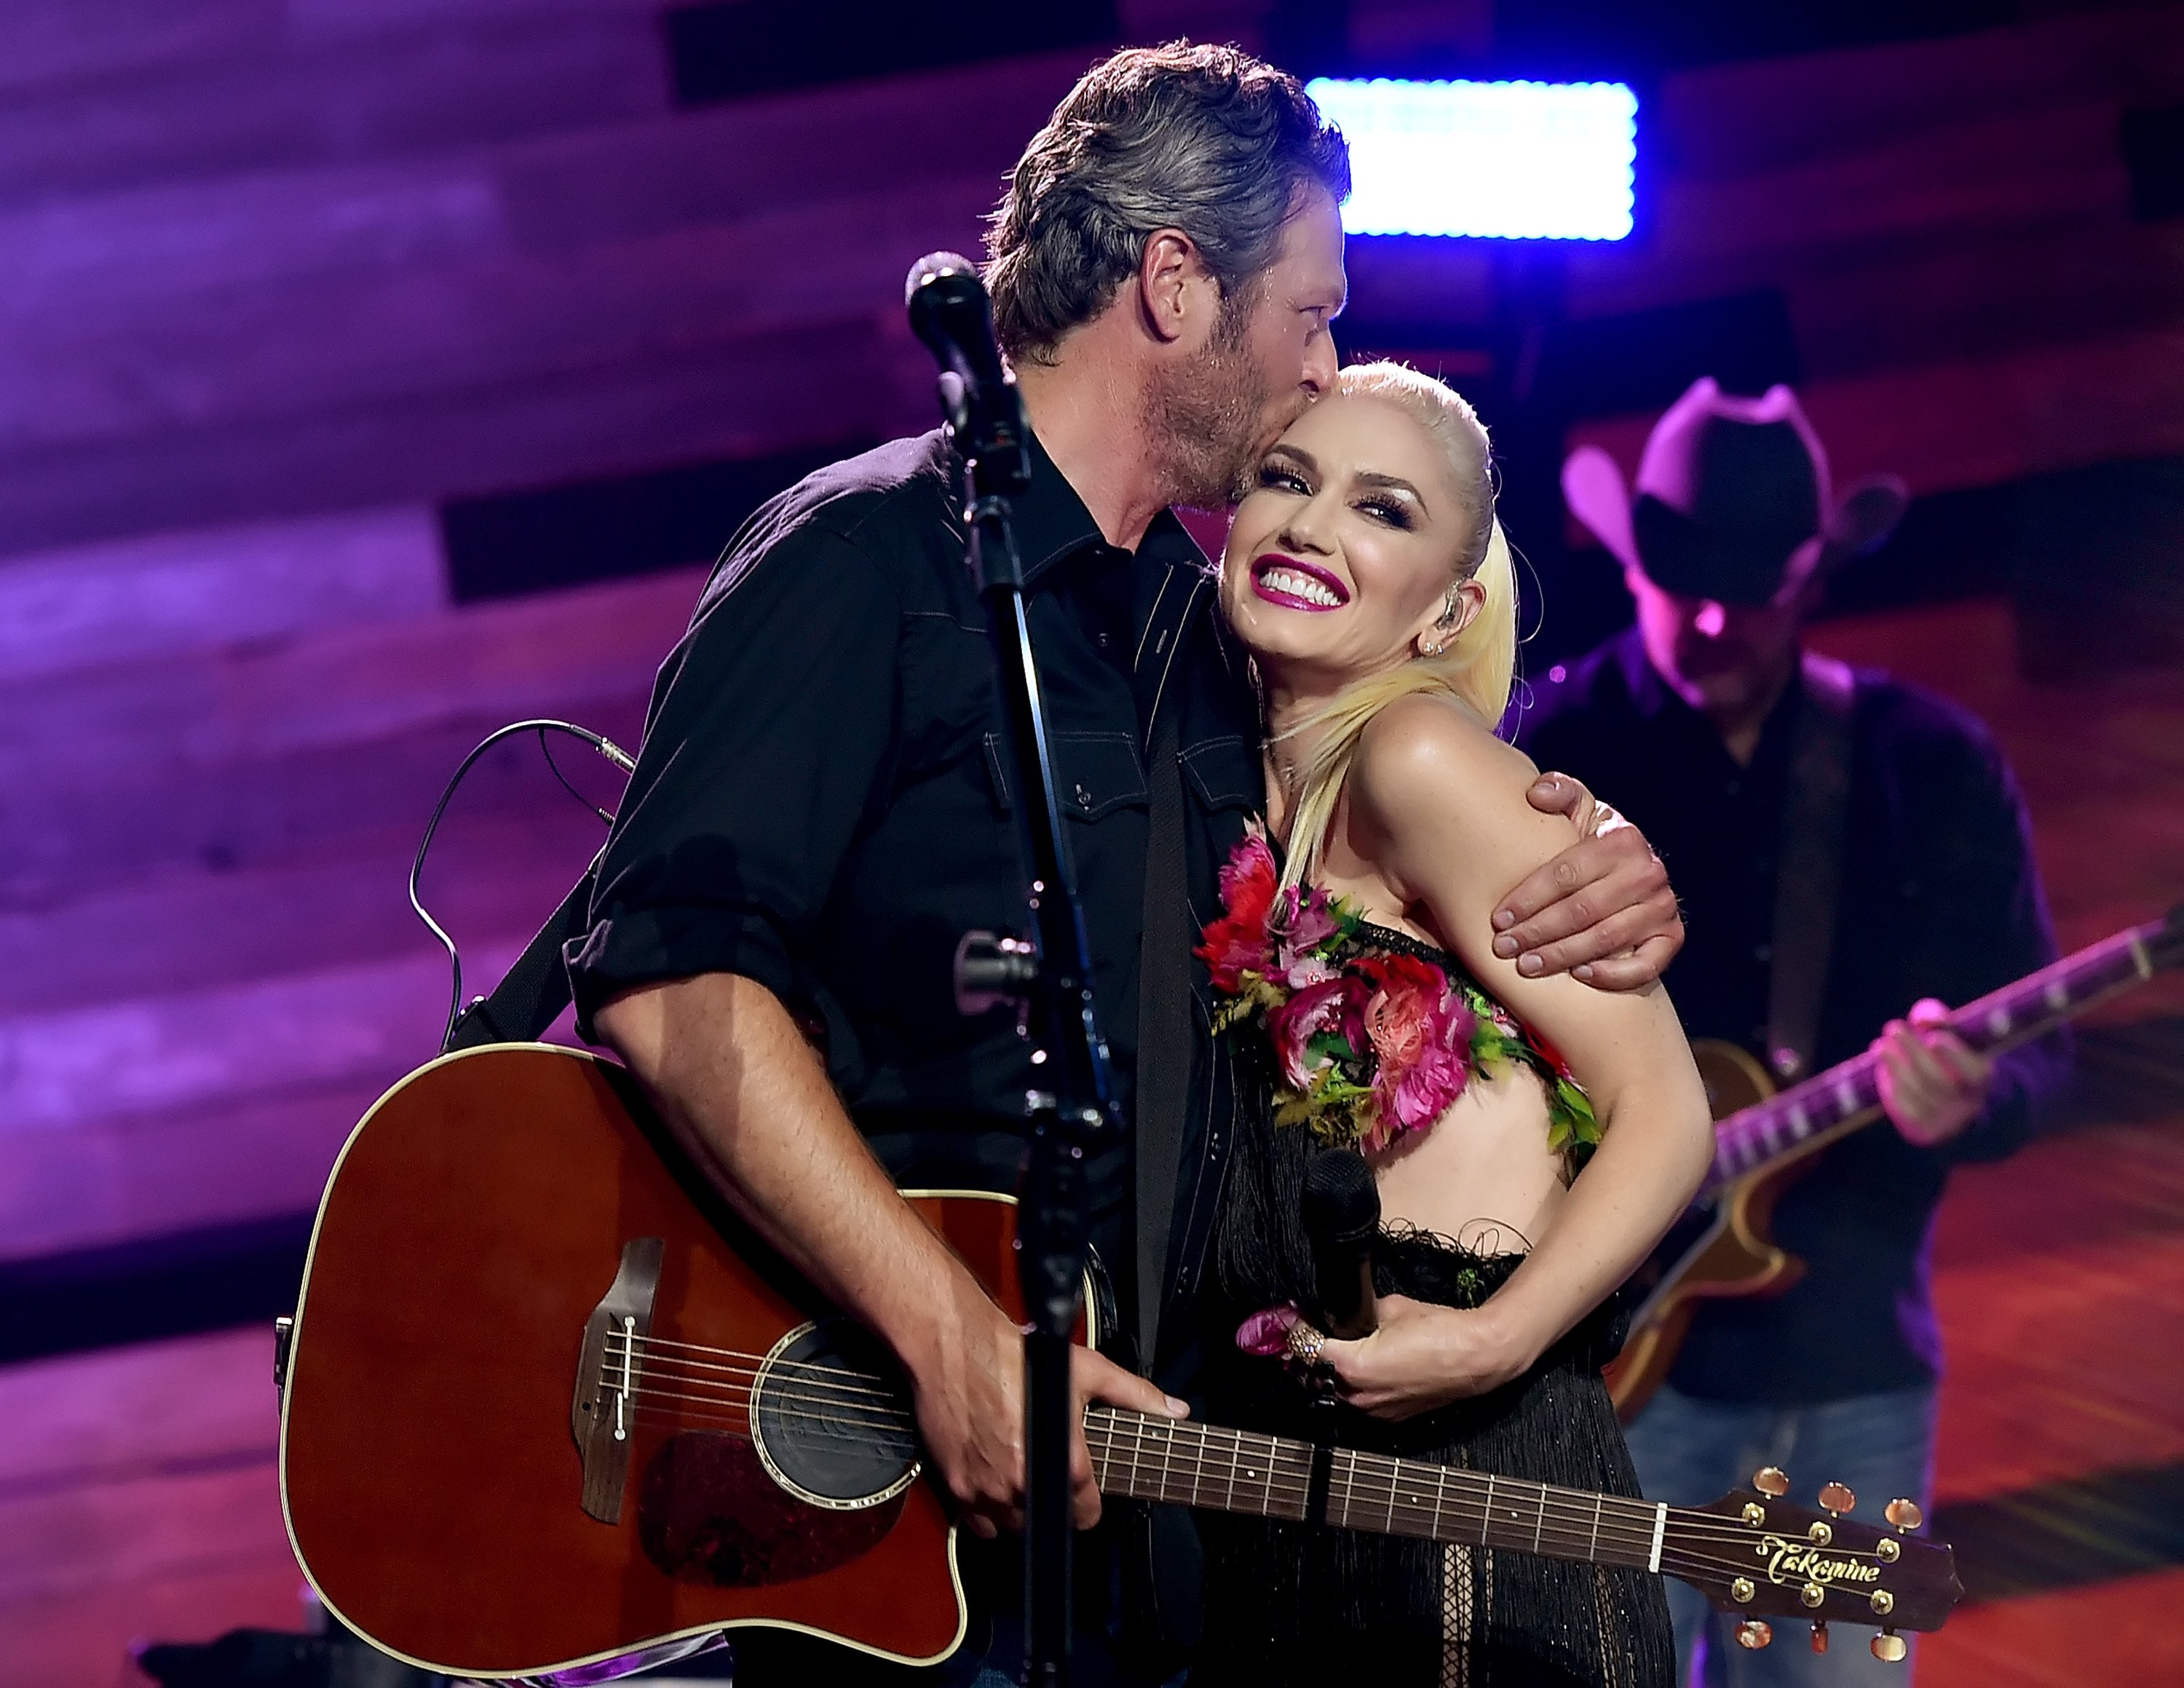 Blake Shelton  and Gwen Stefani perform on the Honda Stage at the iHeartRadio Theater on May 9, 2016 | Photo: GettyImages